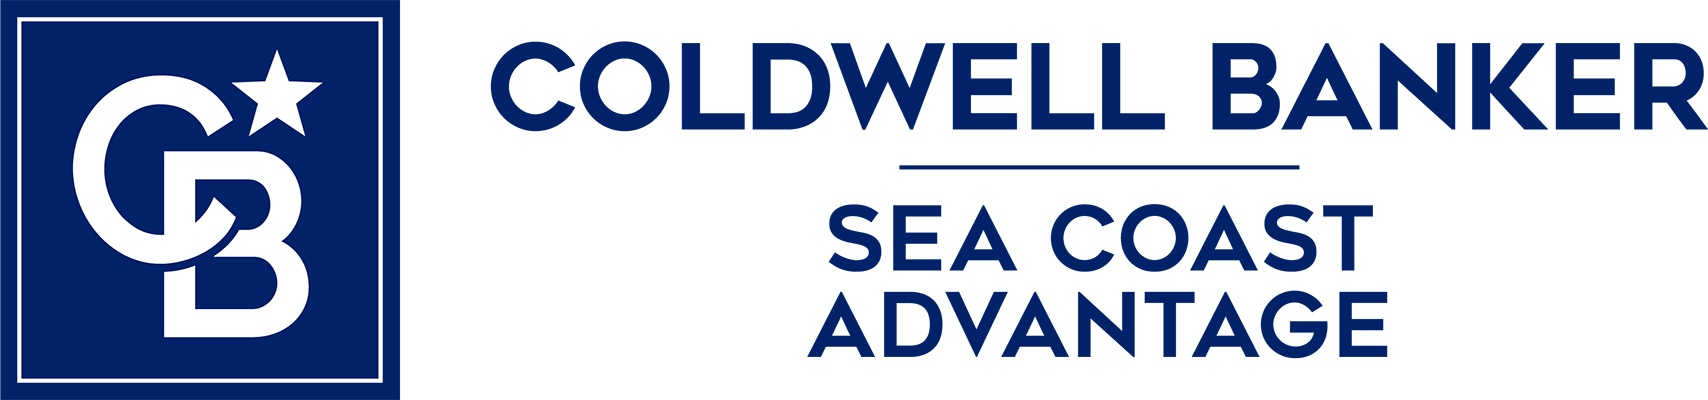 Jason Wier - Coldwell Banker Sea Coast Advantage Realty